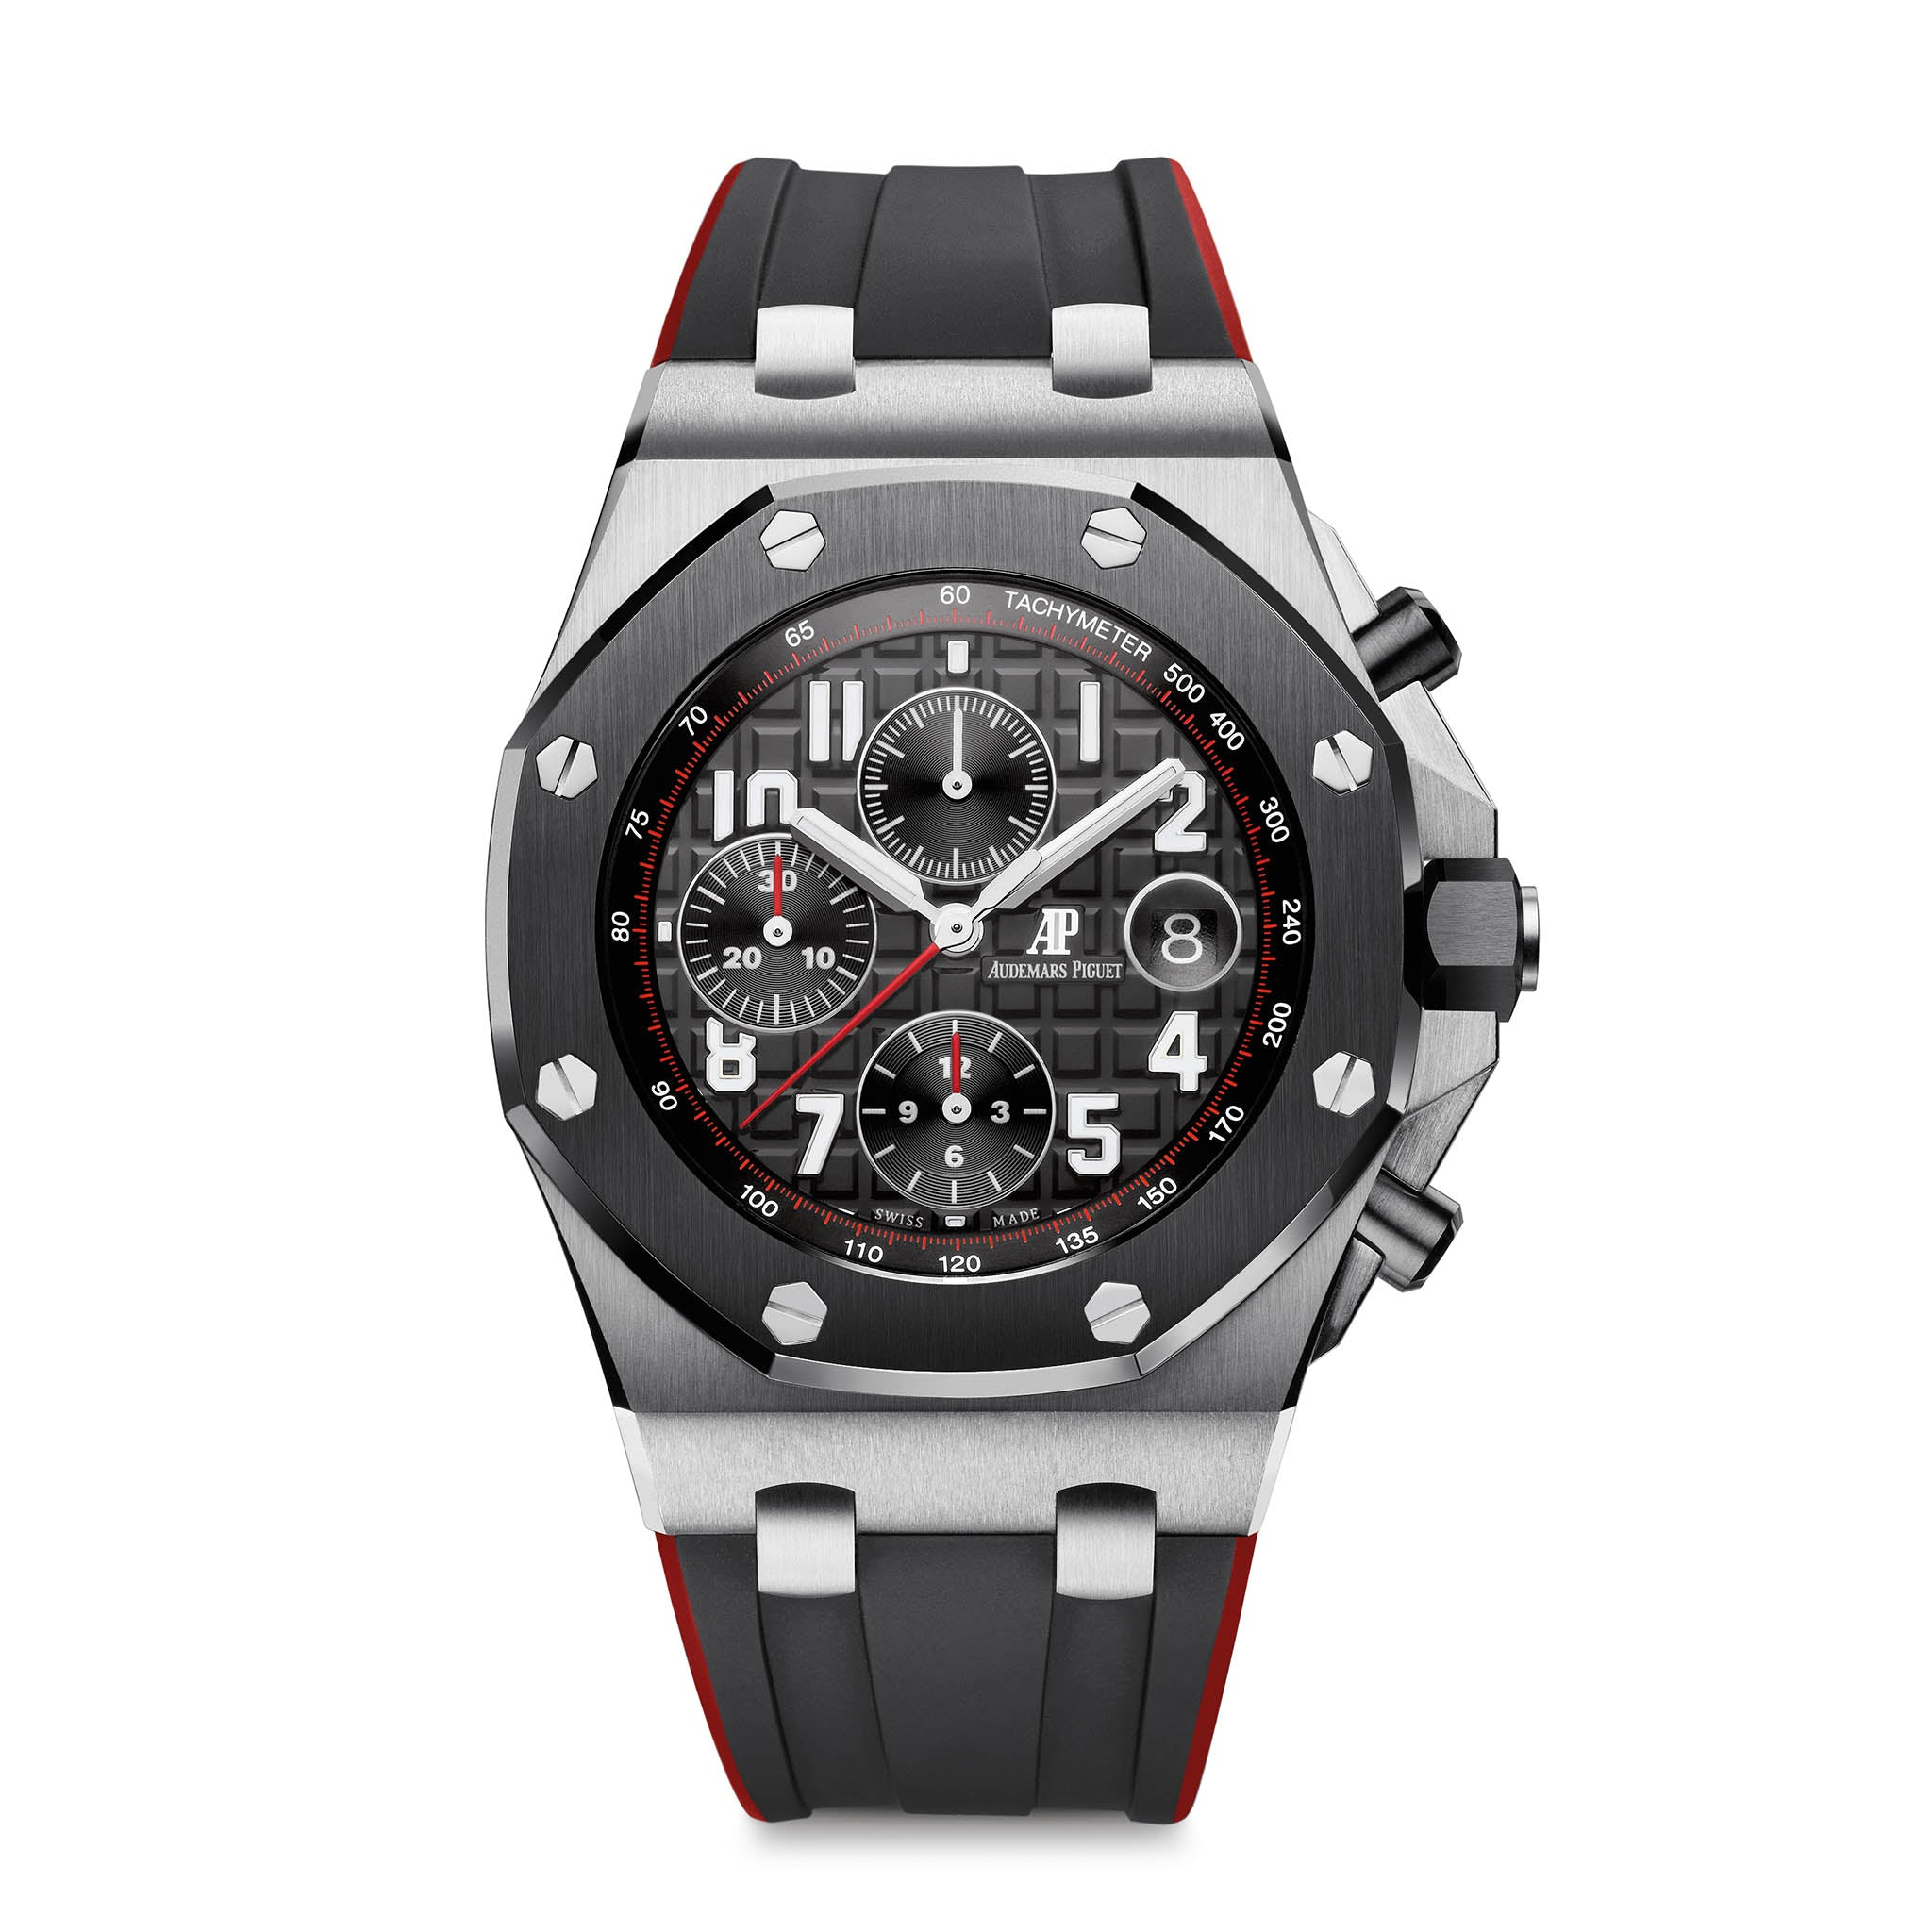 Royal Oak Offshore Chronograph 26470SO.OO.A002CA.01 - Audemars Piguet